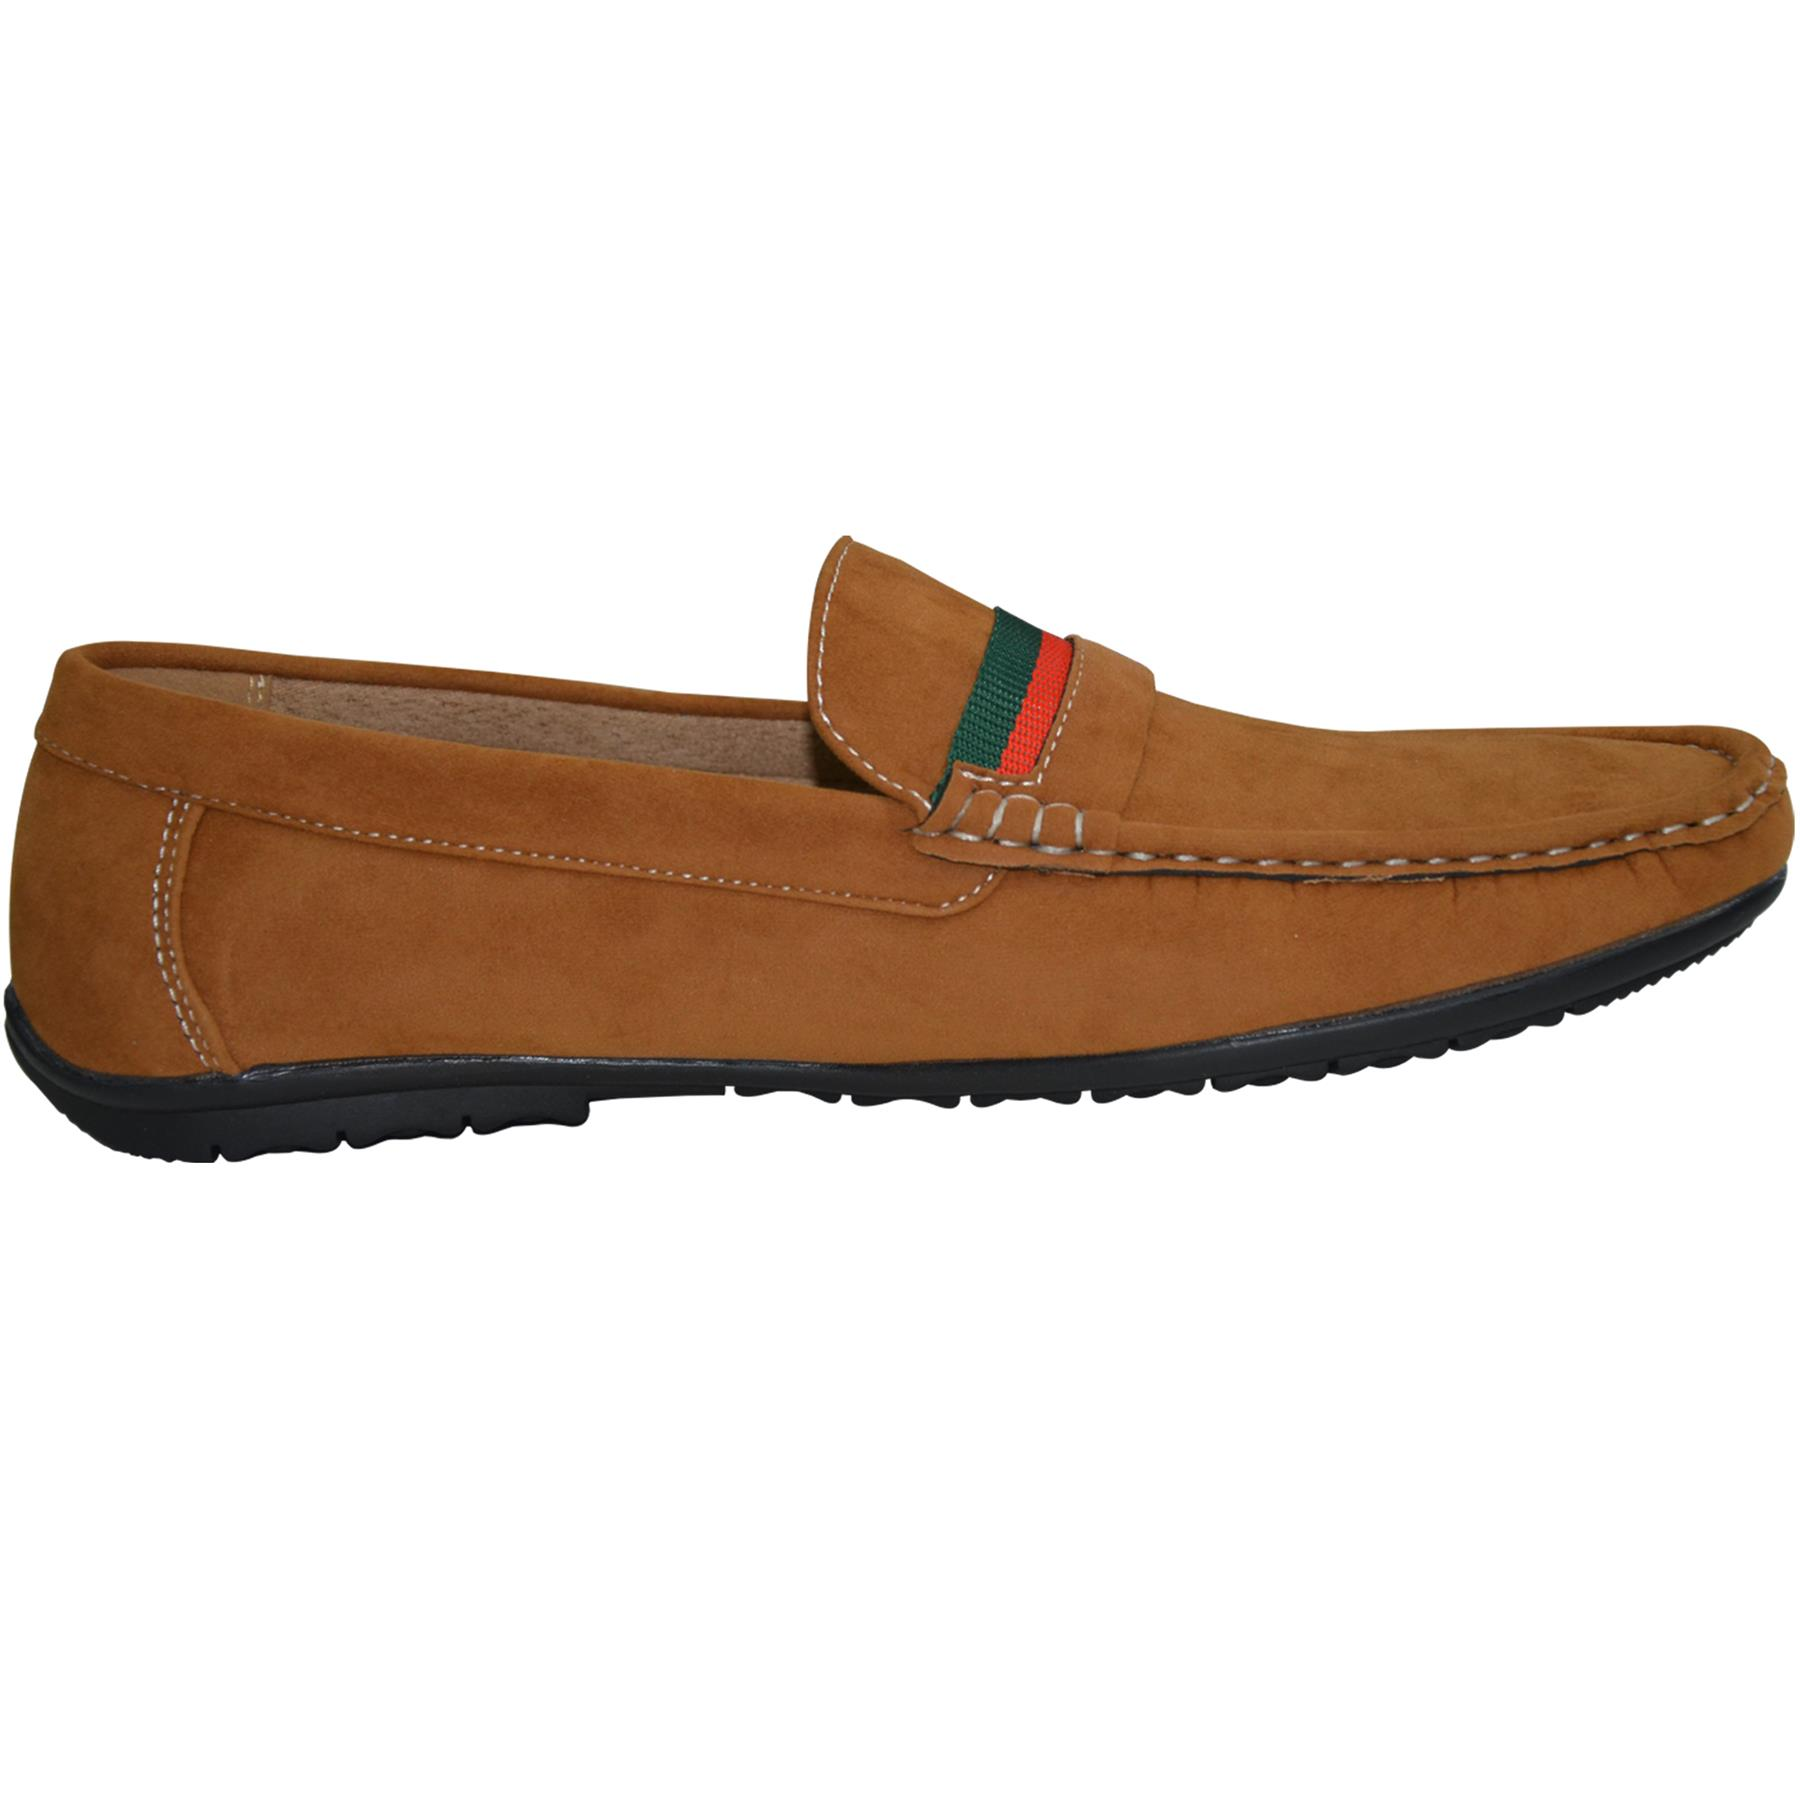 Mens-Slip-Ons-Shoes-Boat-Deck-Driving-Smart-Buckle-Moccasins-Suede-Look-Loafers thumbnail 30